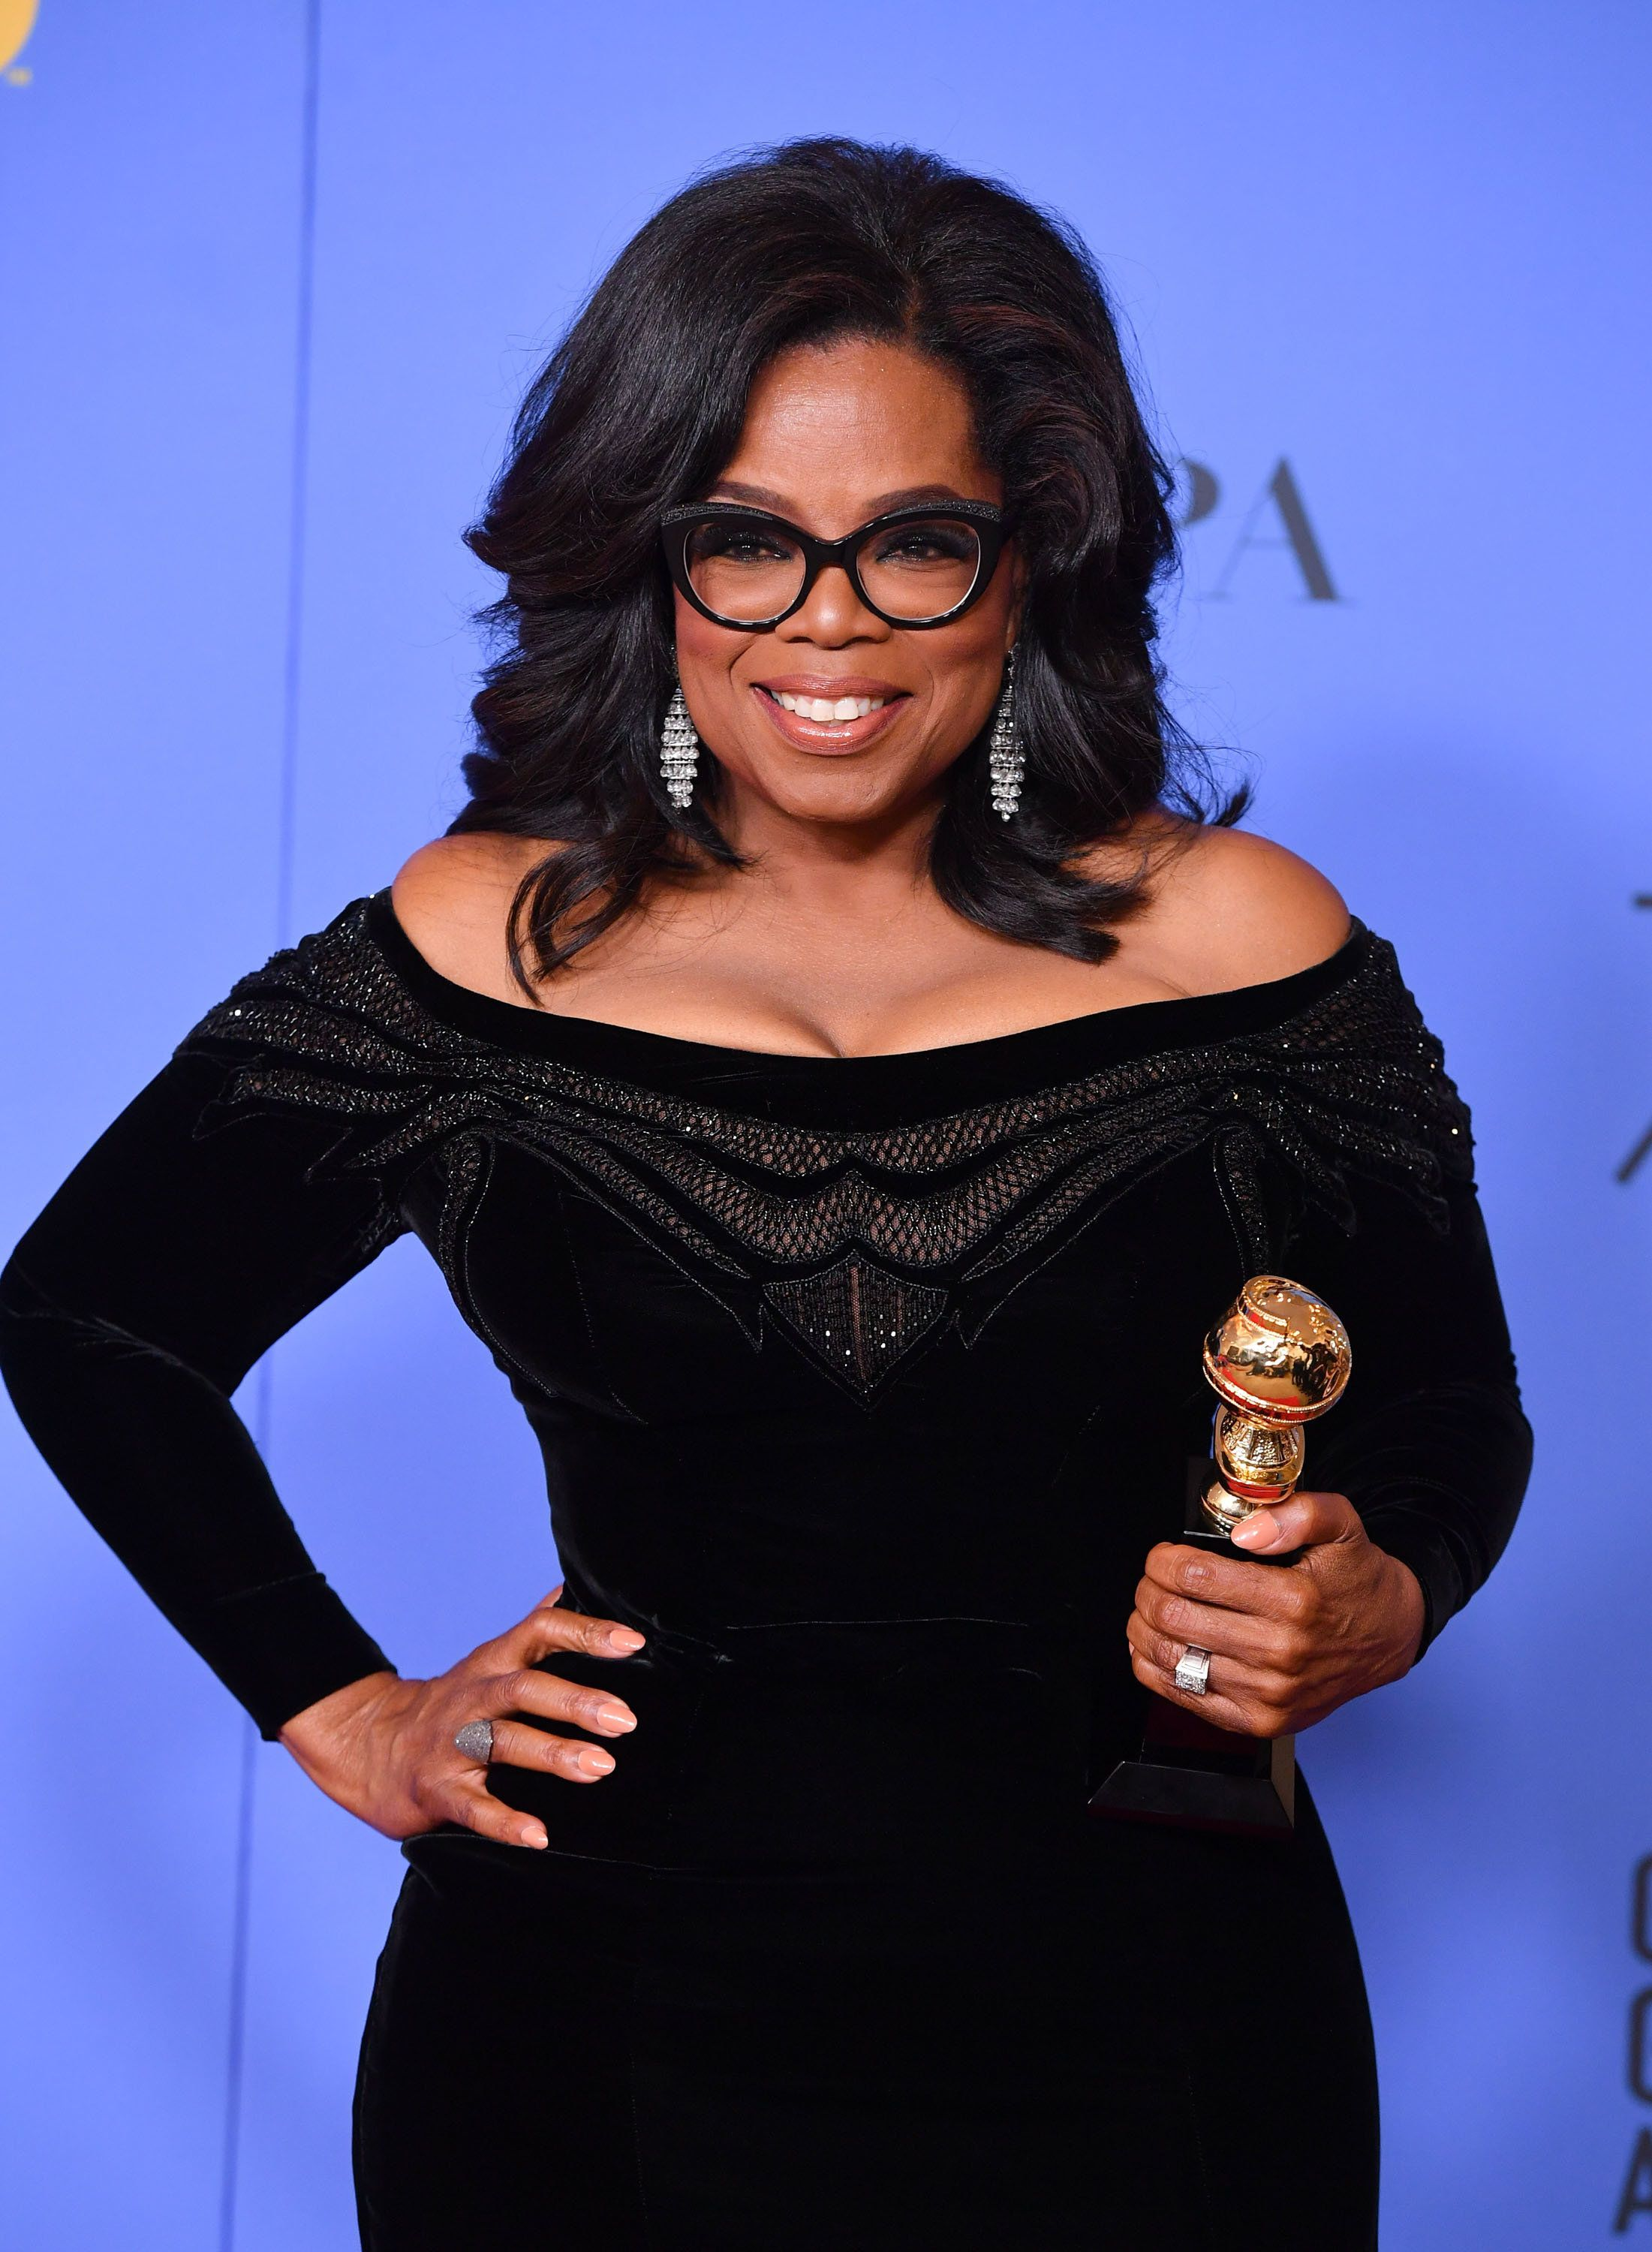 BEVERLY HILLS, CA - JANUARY 07:  Oprah Winfrey poses with the Cecil B. DeMille Award in the press room during The 75th Annual Golden Globe Awards at The Beverly Hilton Hotel on January 7, 2018 in Beverly Hills, California.  (Photo by George Pimentel/WireImage)